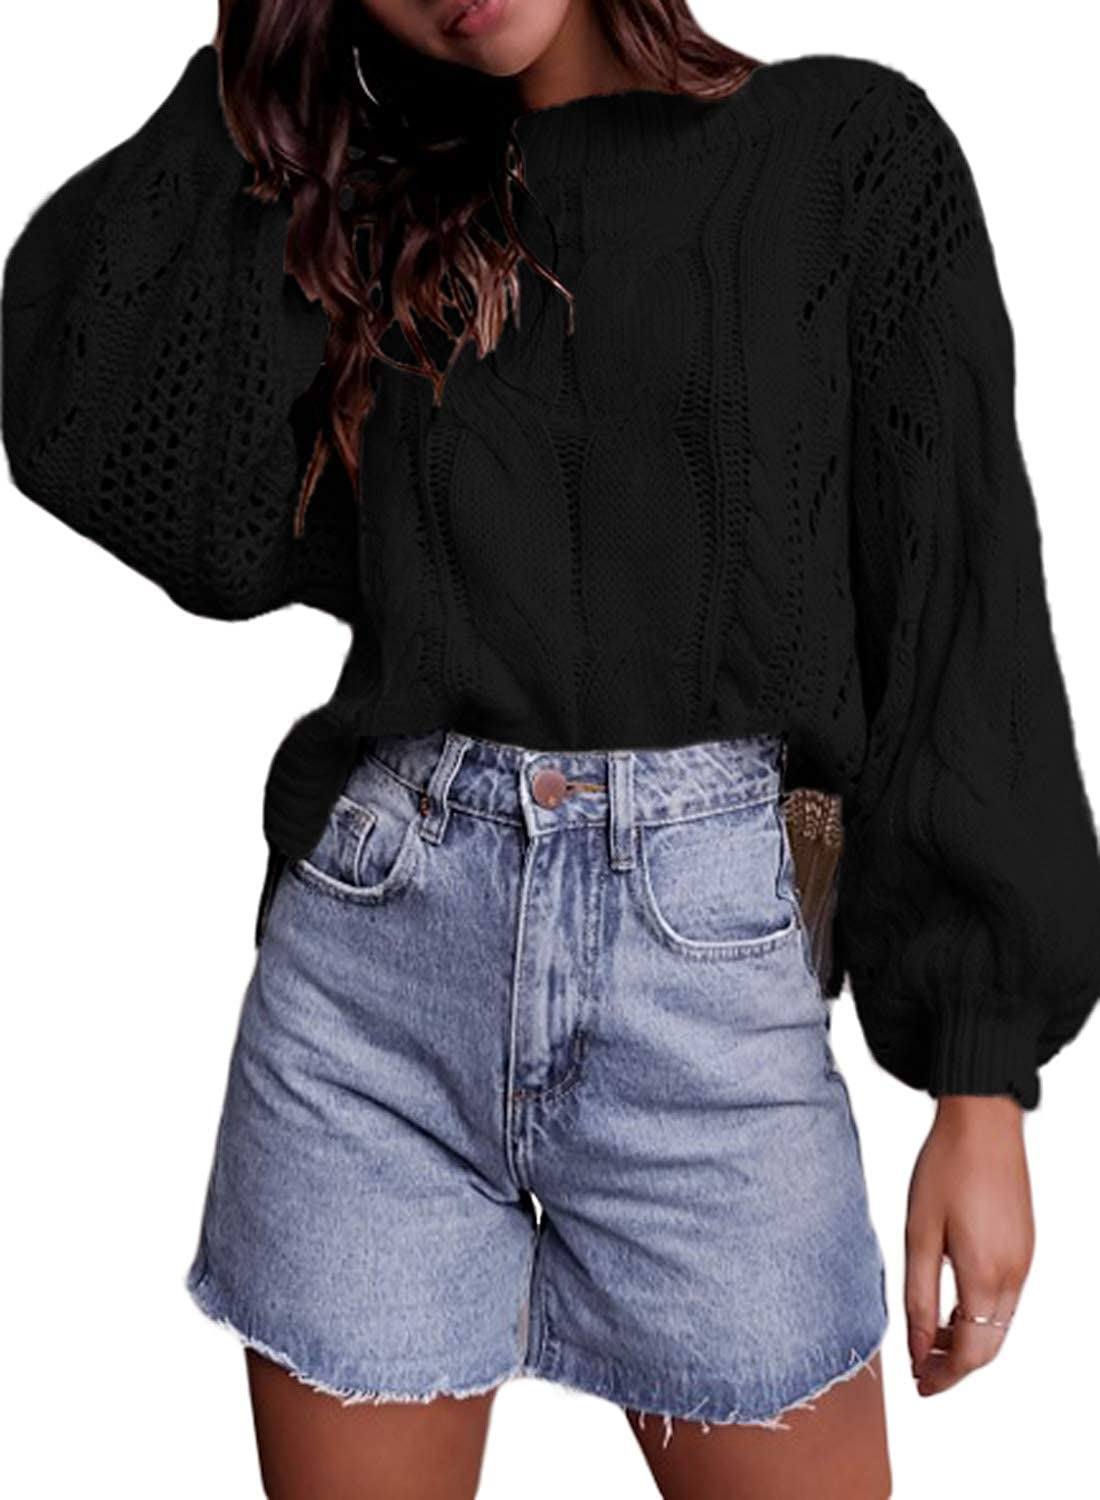 372a7df6073eec Loose style, Long Sleeve, Hollow out,Pullover Sweater for Women and Teens  Solid color,Crew neck,Lantern Sleeve,Ribbed cuffs and hem